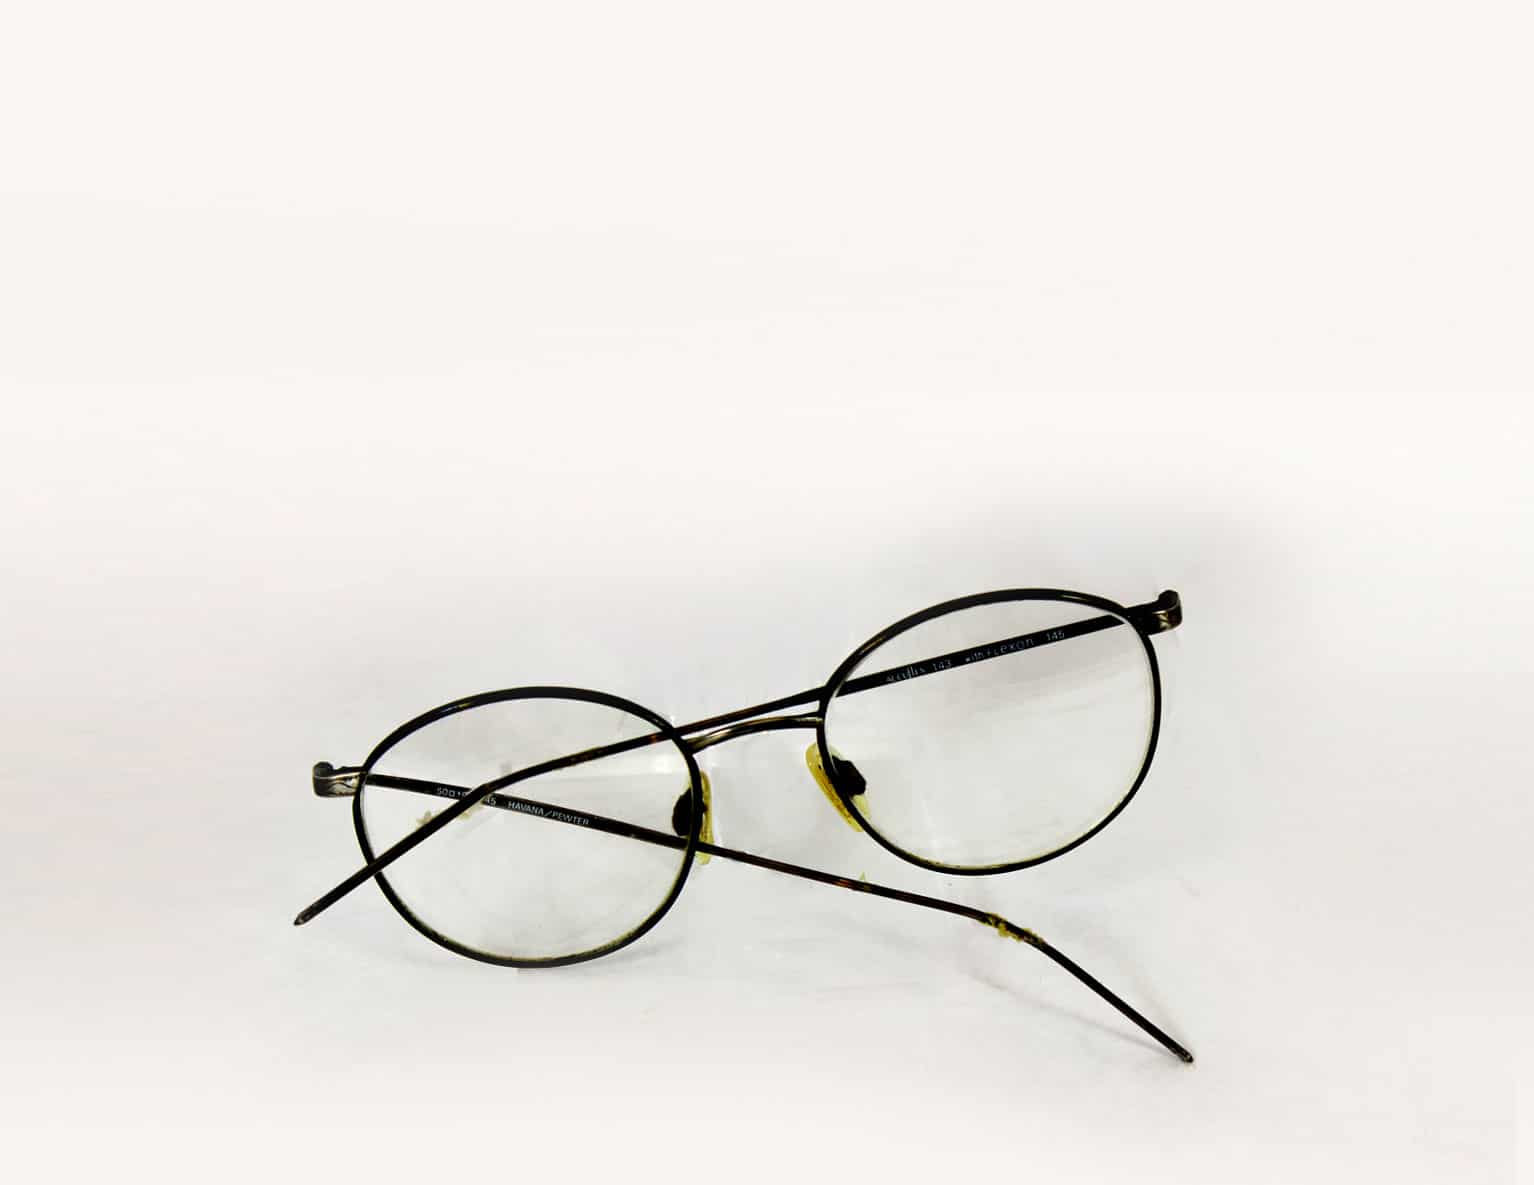 Repairing Bent Glasses Frames : Adjusting bent eyewear